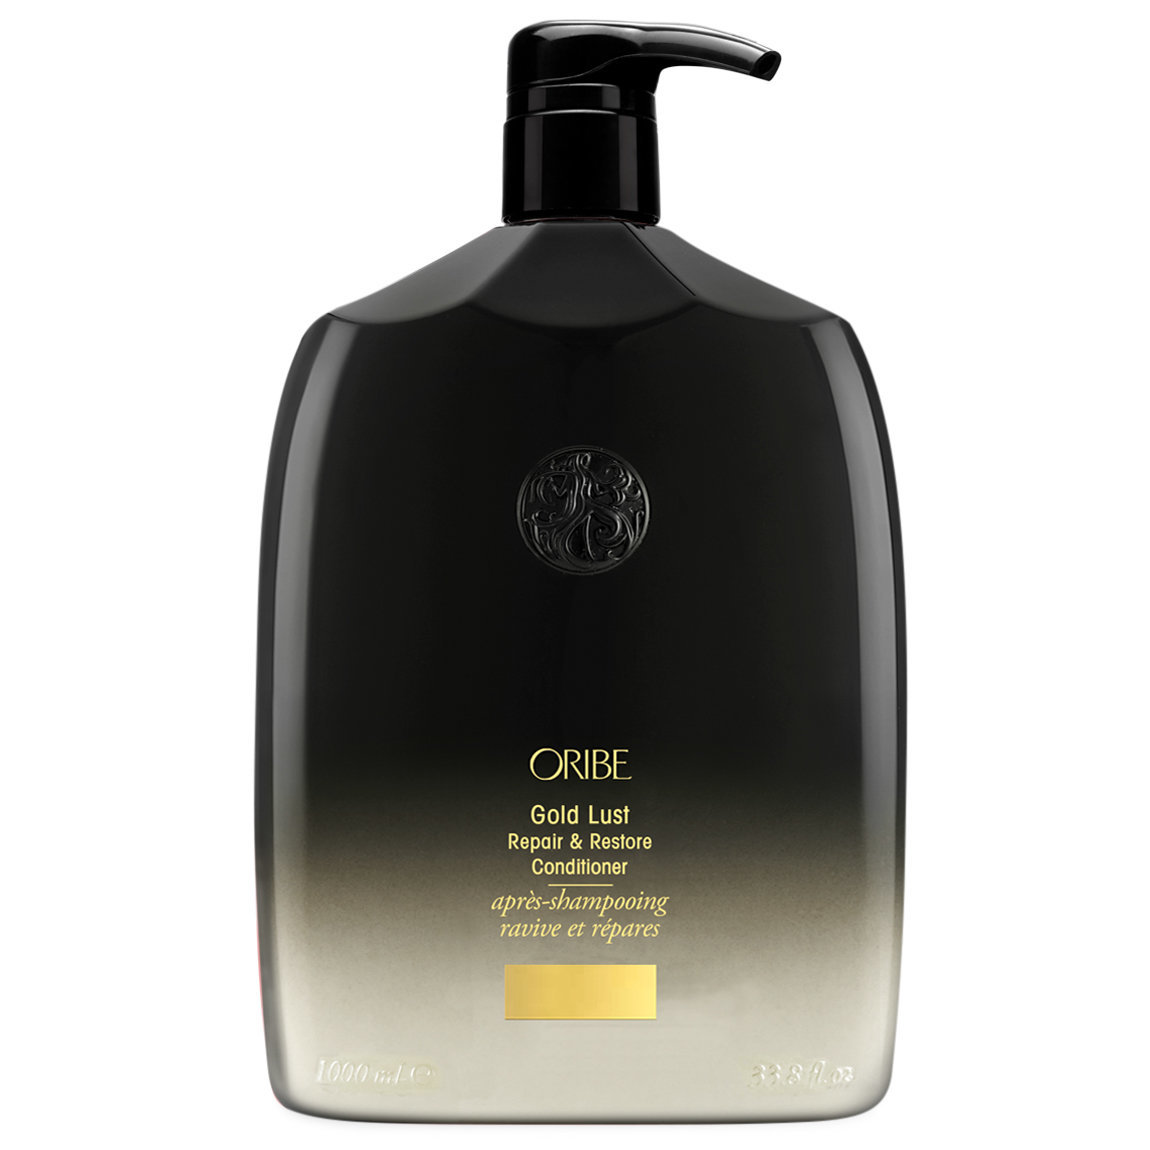 Oribe Gold Lust Repair & Restore Conditioner 1 L alternative view 1 - product swatch.